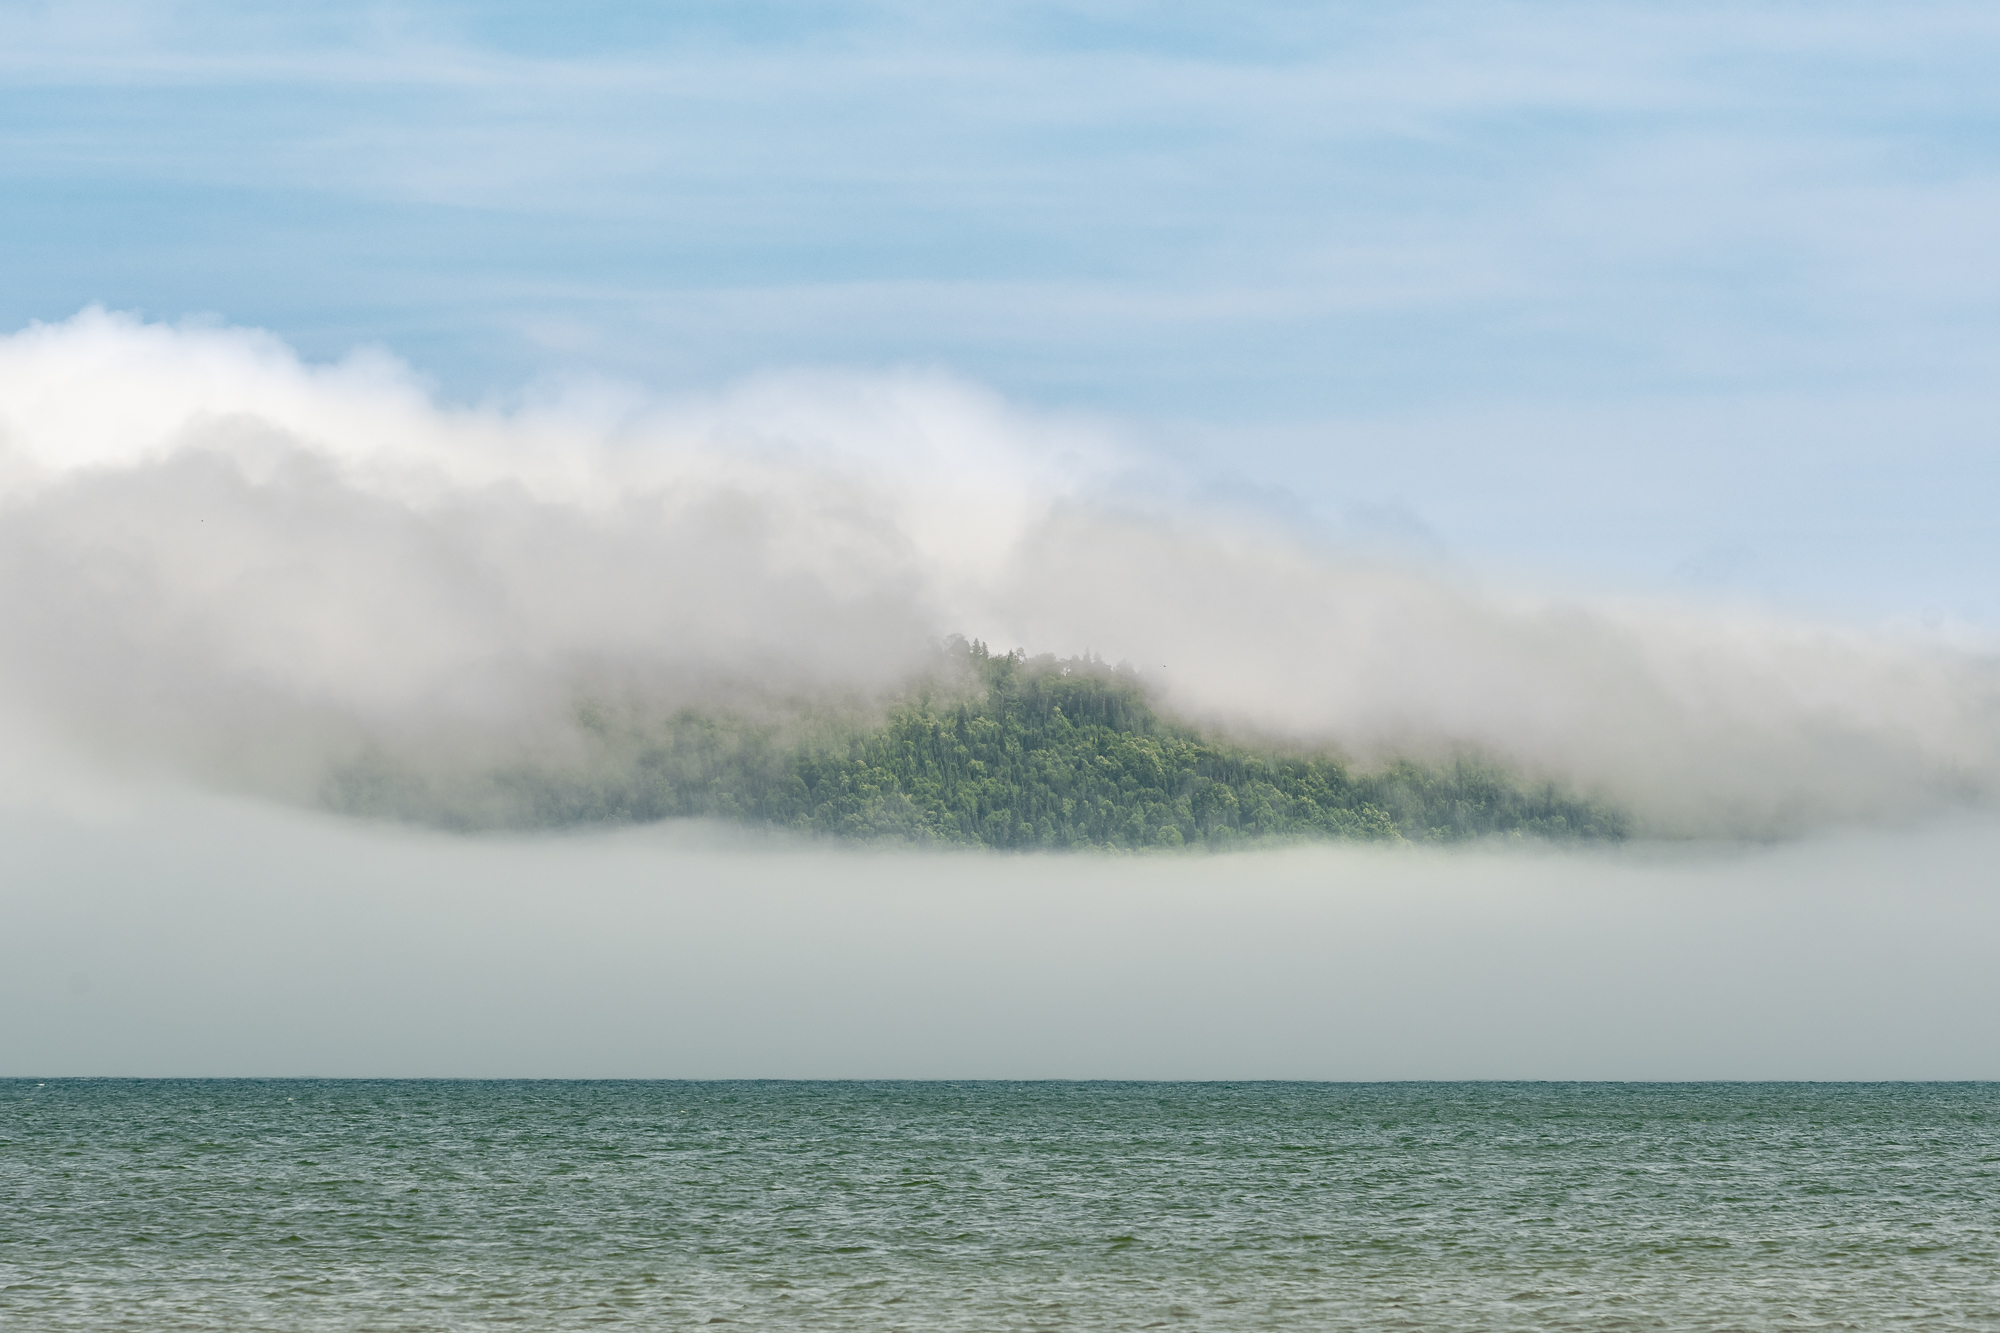 Fog over Grand Portage Bay